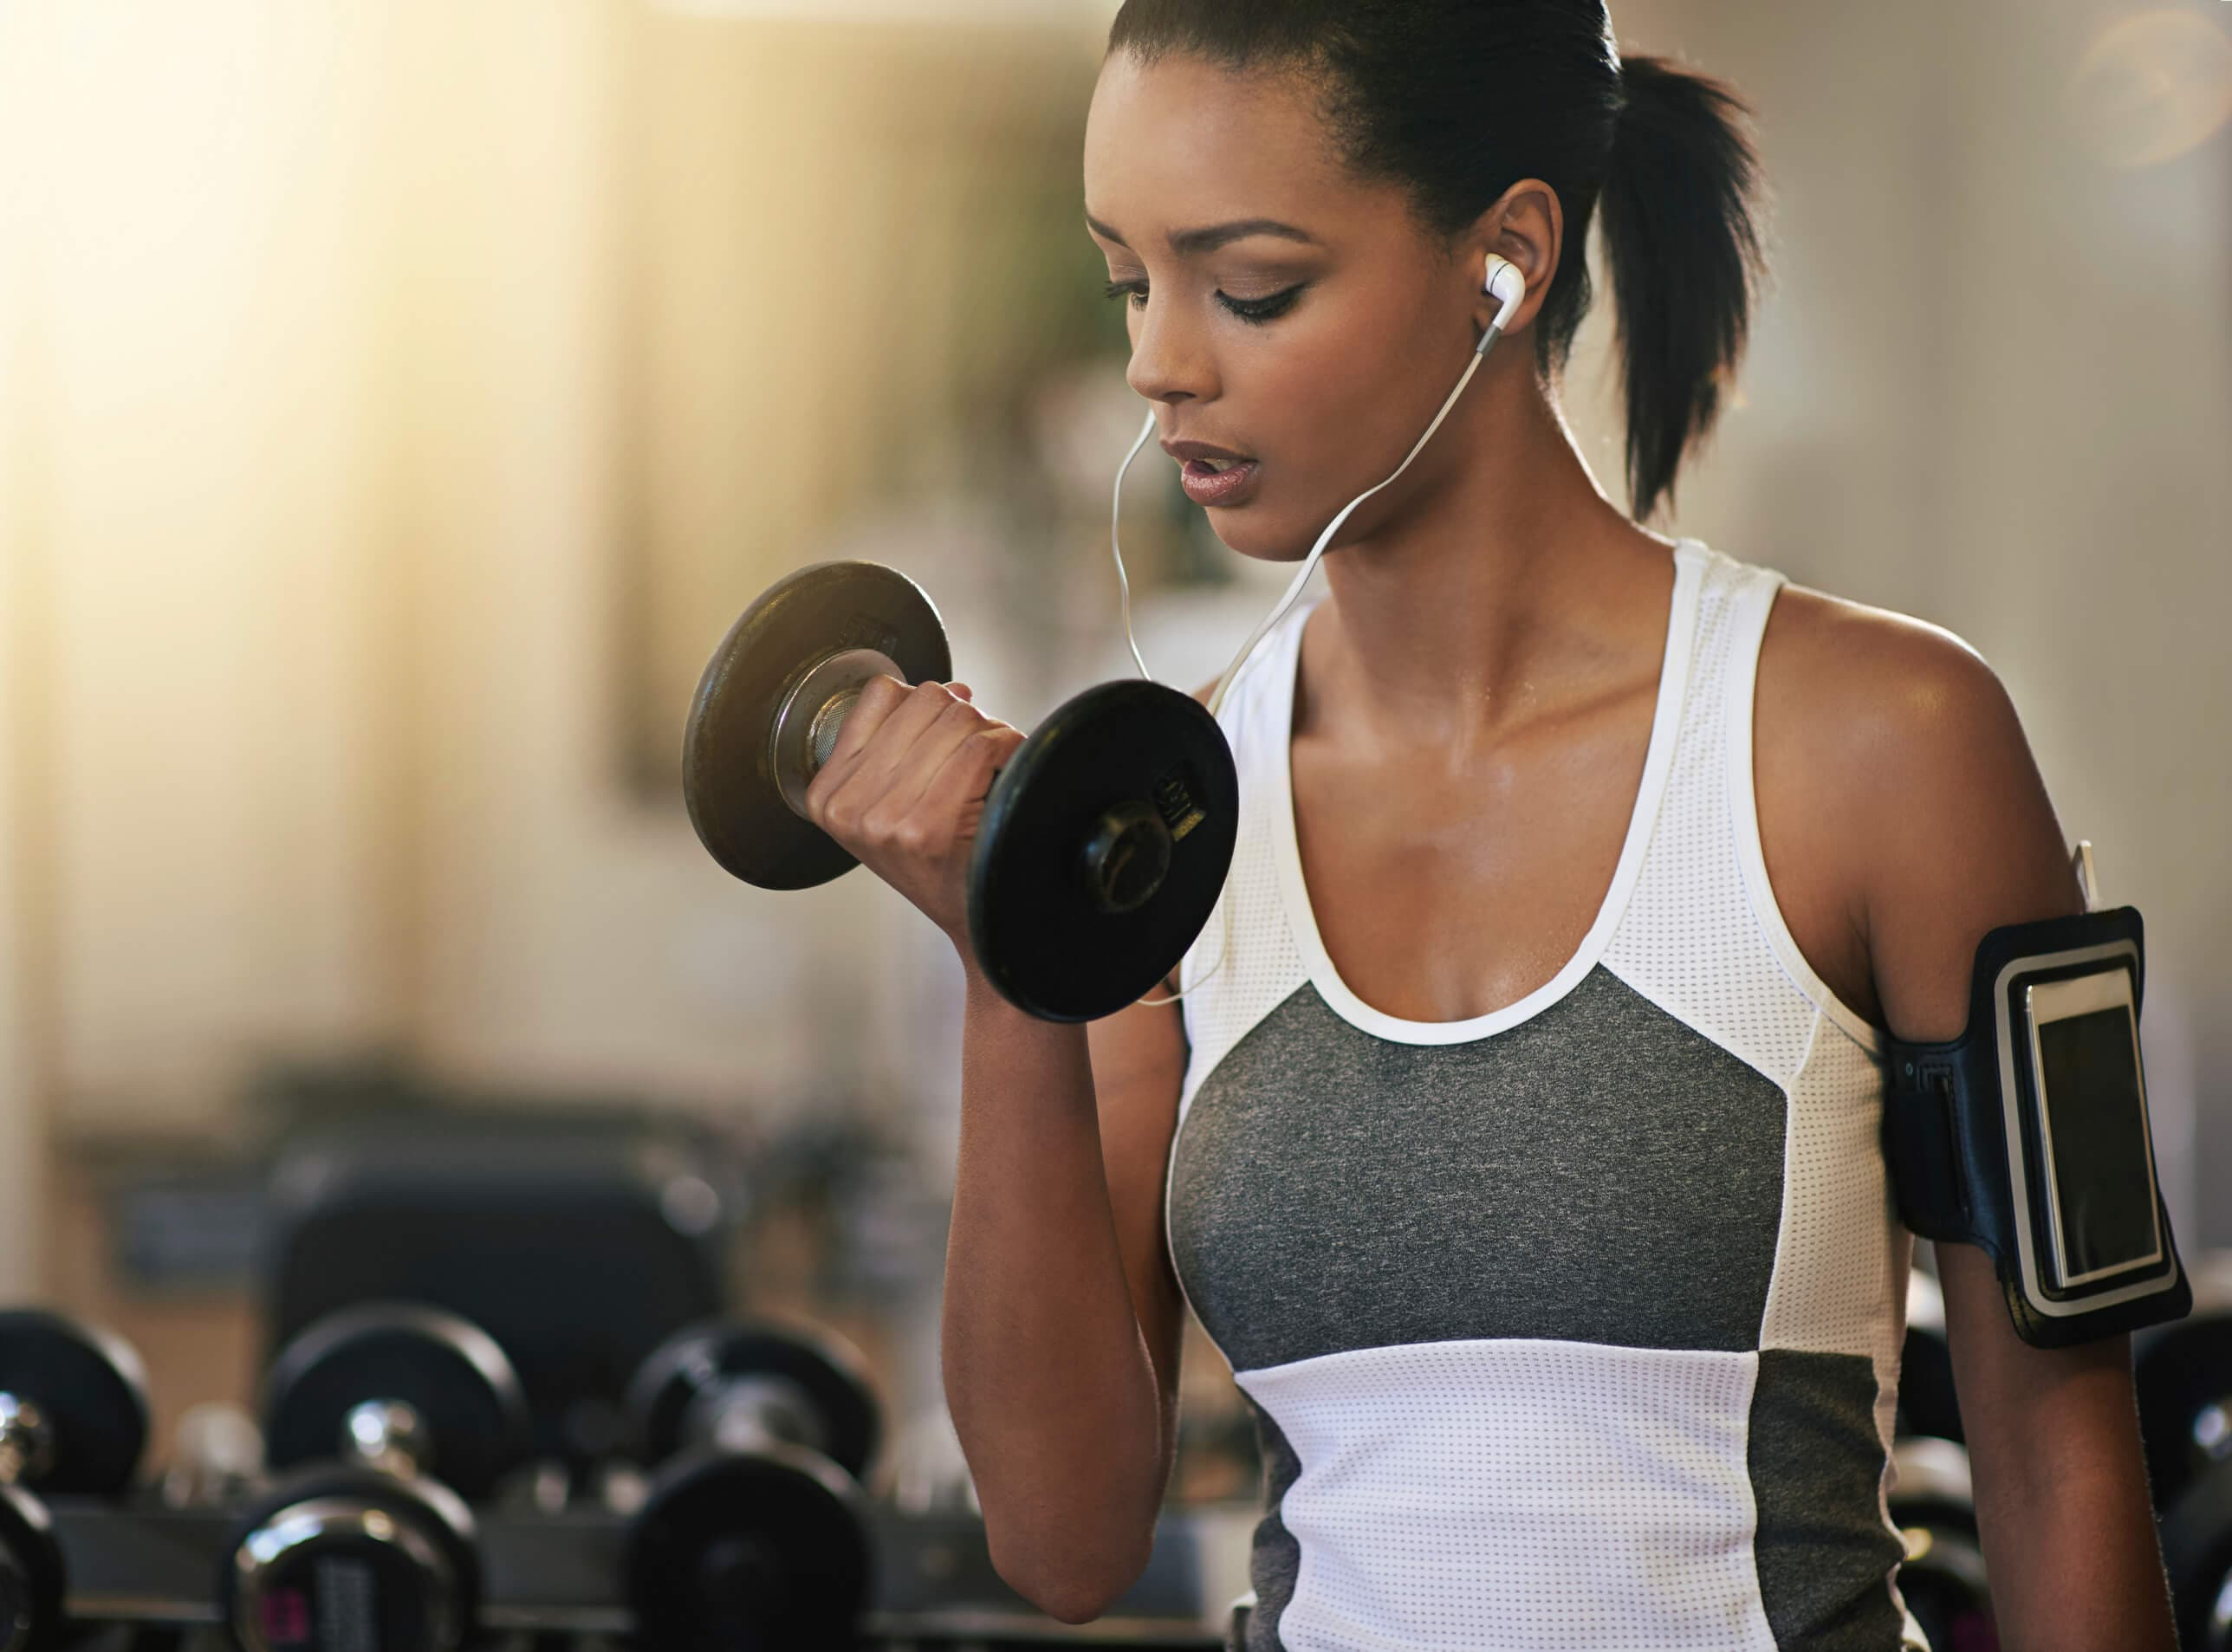 Gym hairstyles for short hair: Sporty brunette with a low ponytail, lifting dumbells in the gym